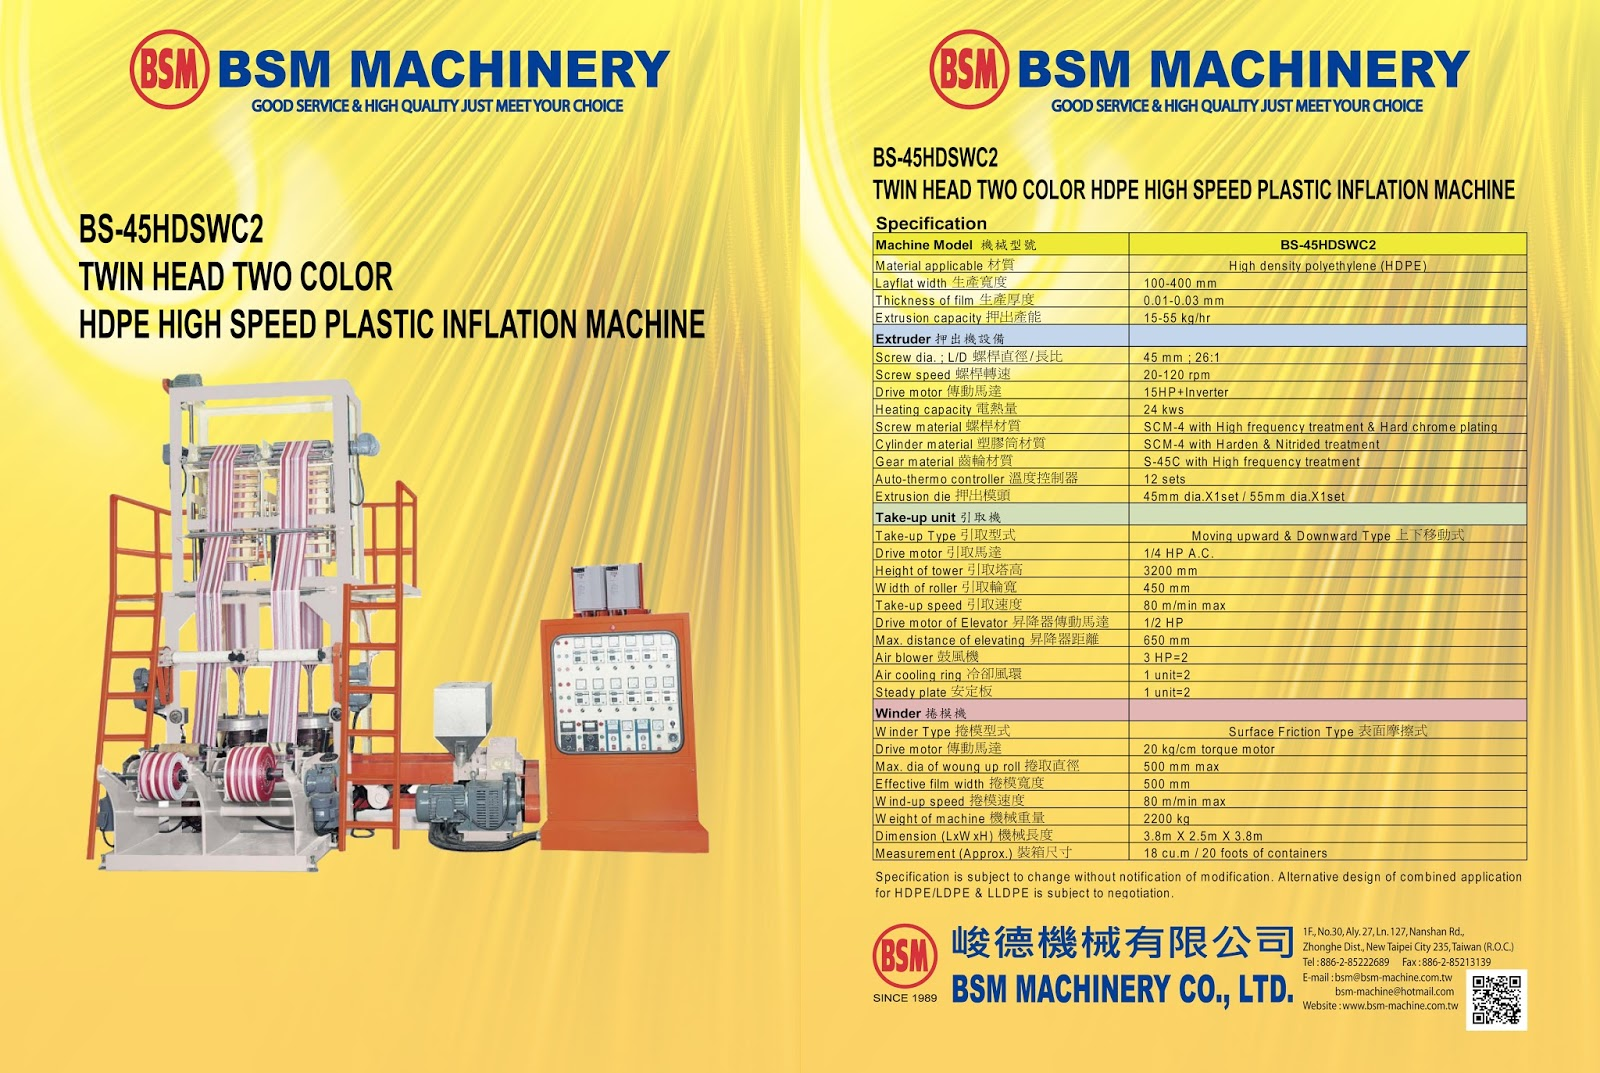 BS-45HDSWC2  TWIN HEAD TWO COLOR HDPE HIGH SPEED PLASTIC INFLATION MACHINE